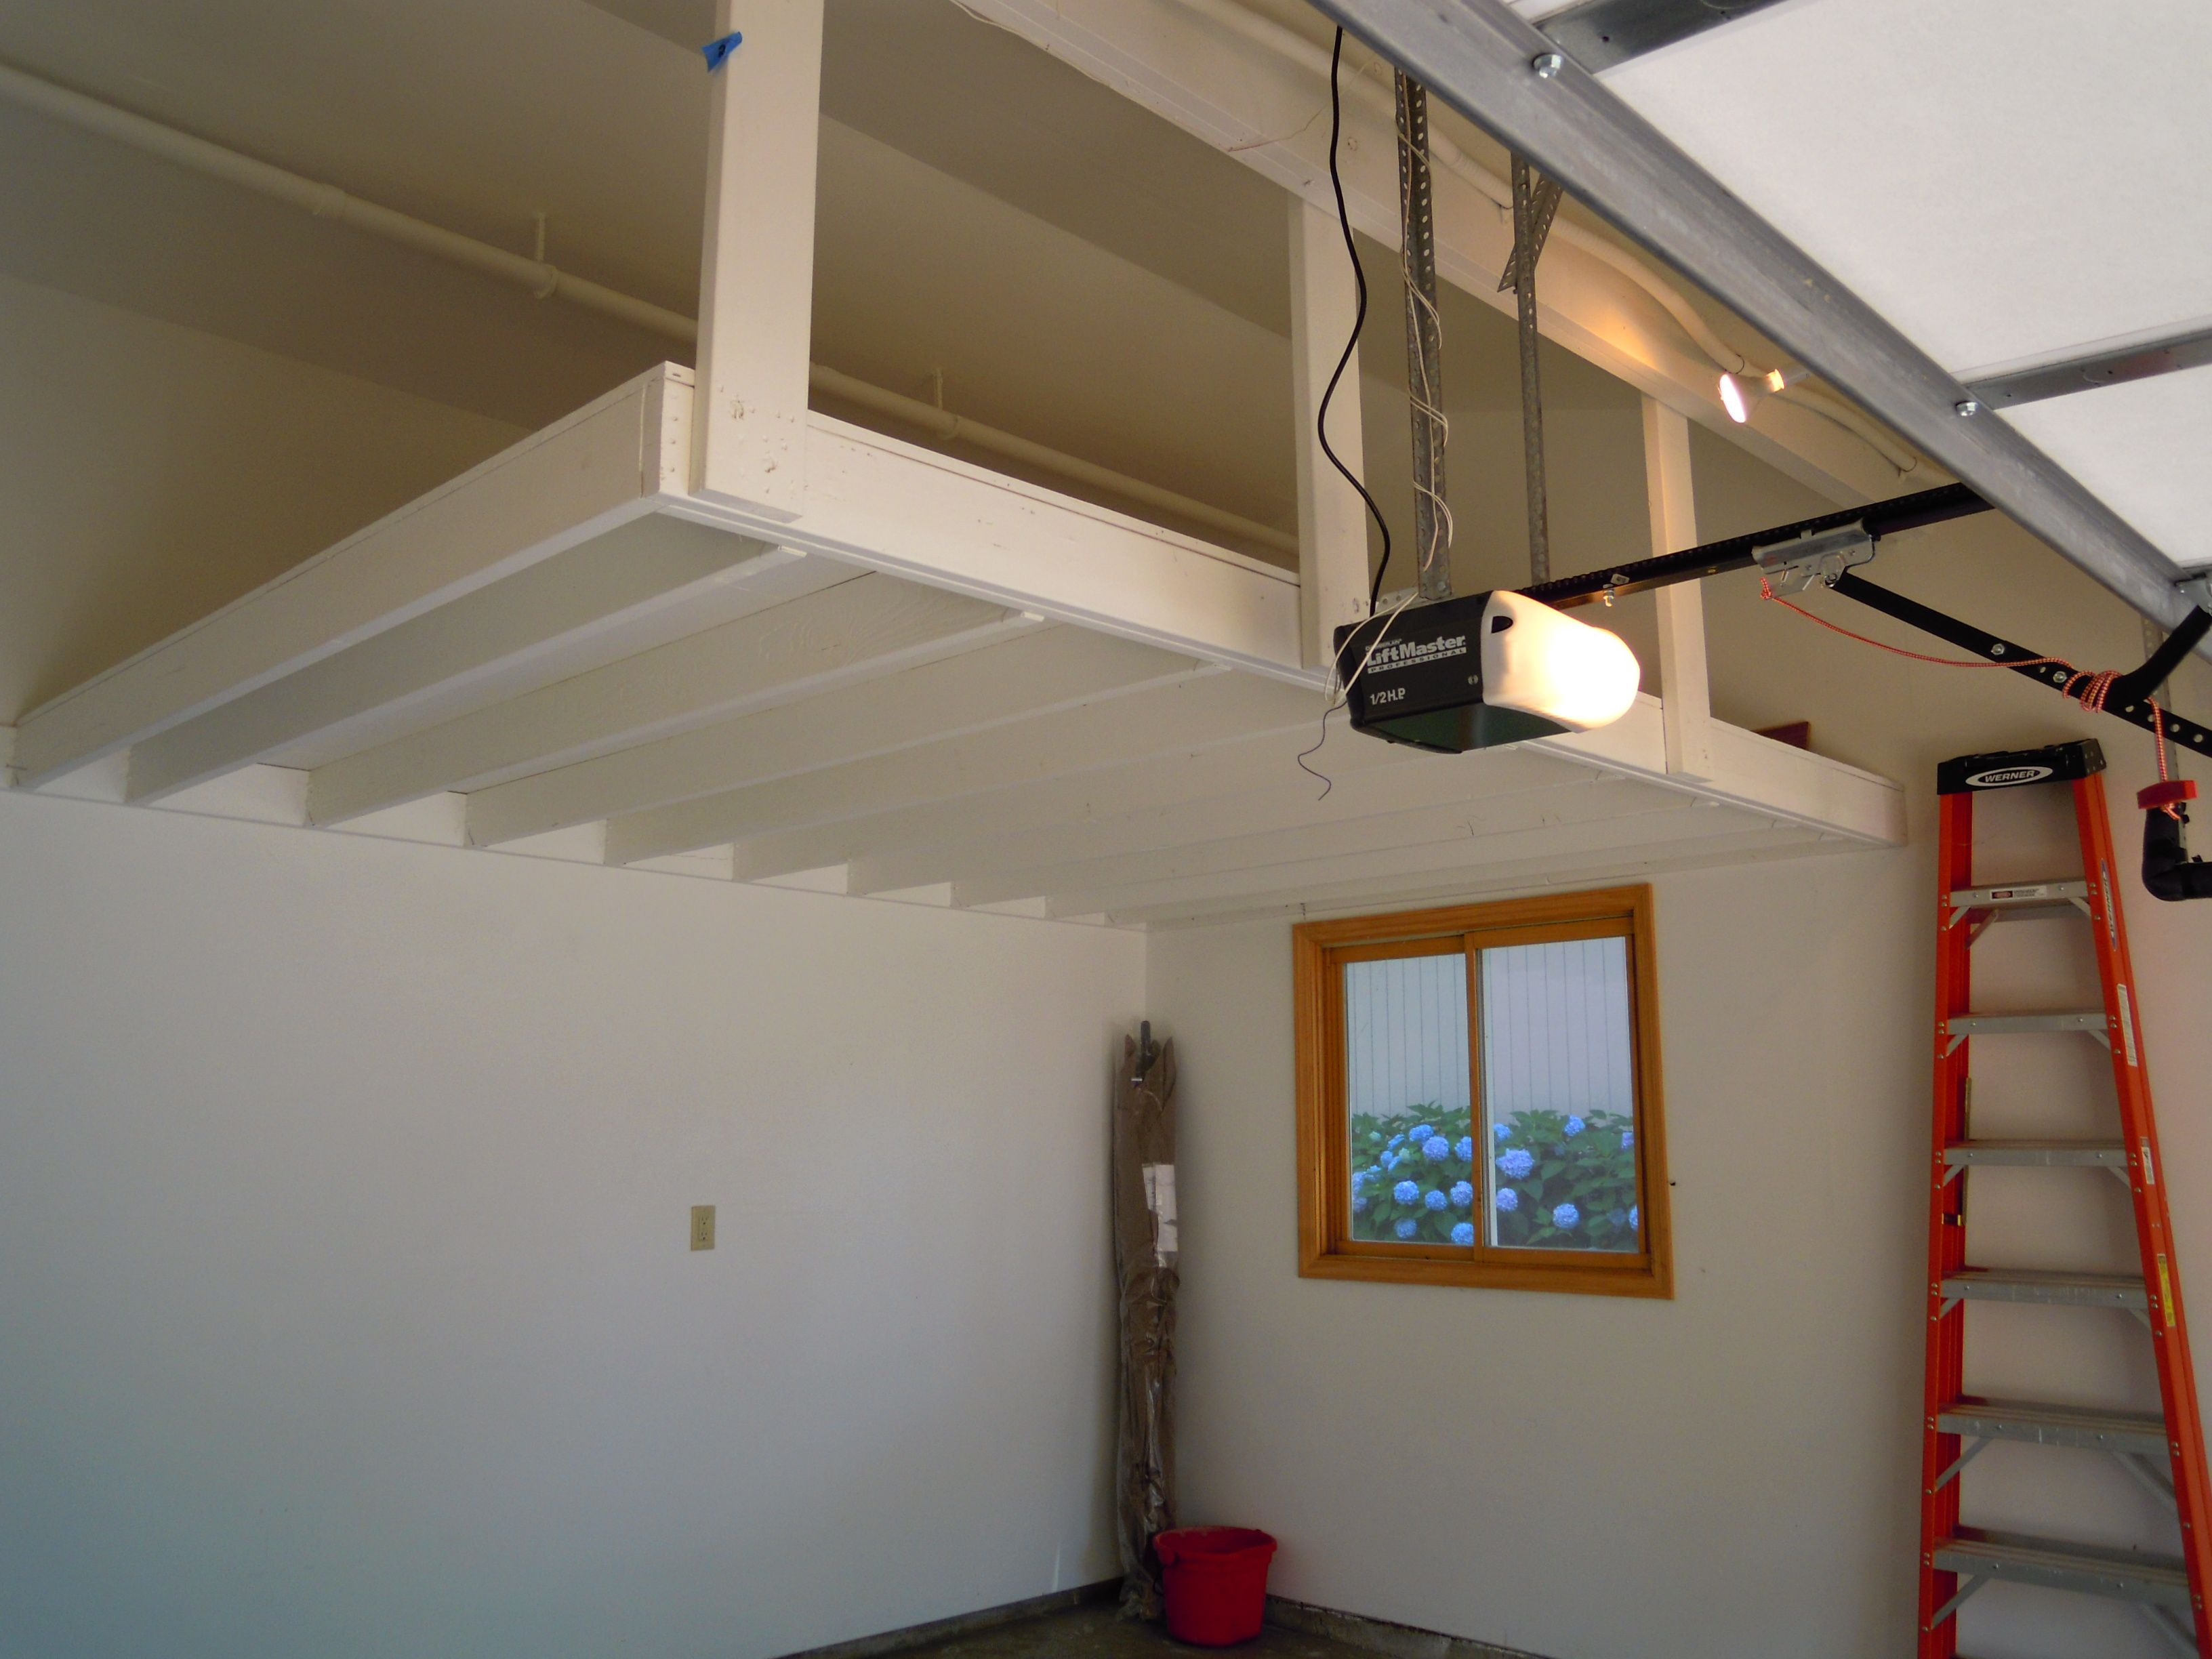 11+ How to build a garage loft image popular